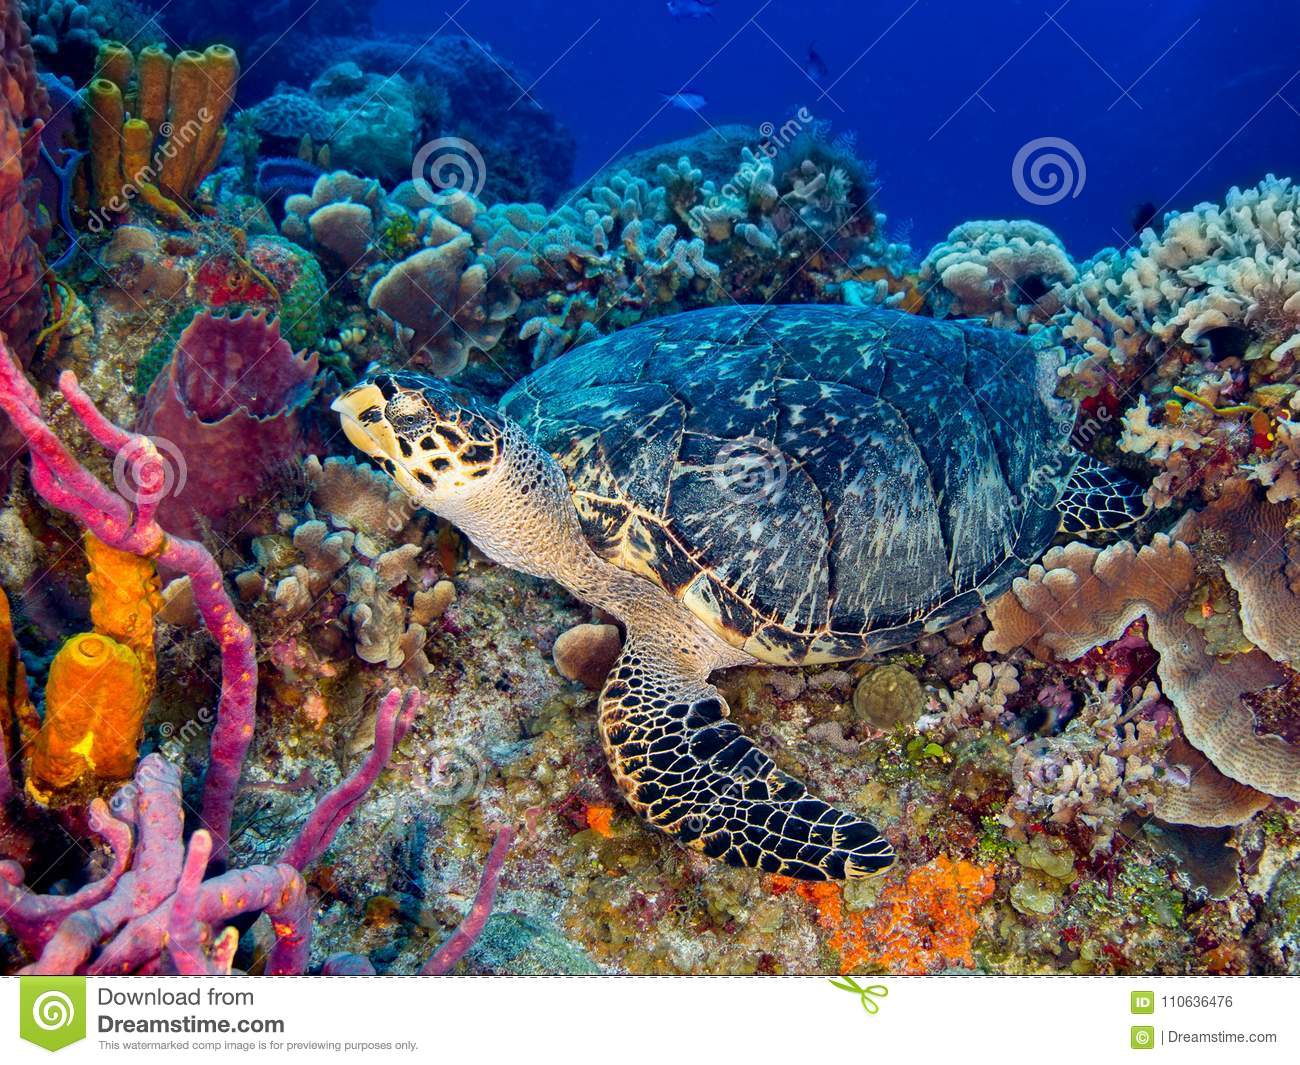 Hawksbill Turtle Resting on Colorful Coral